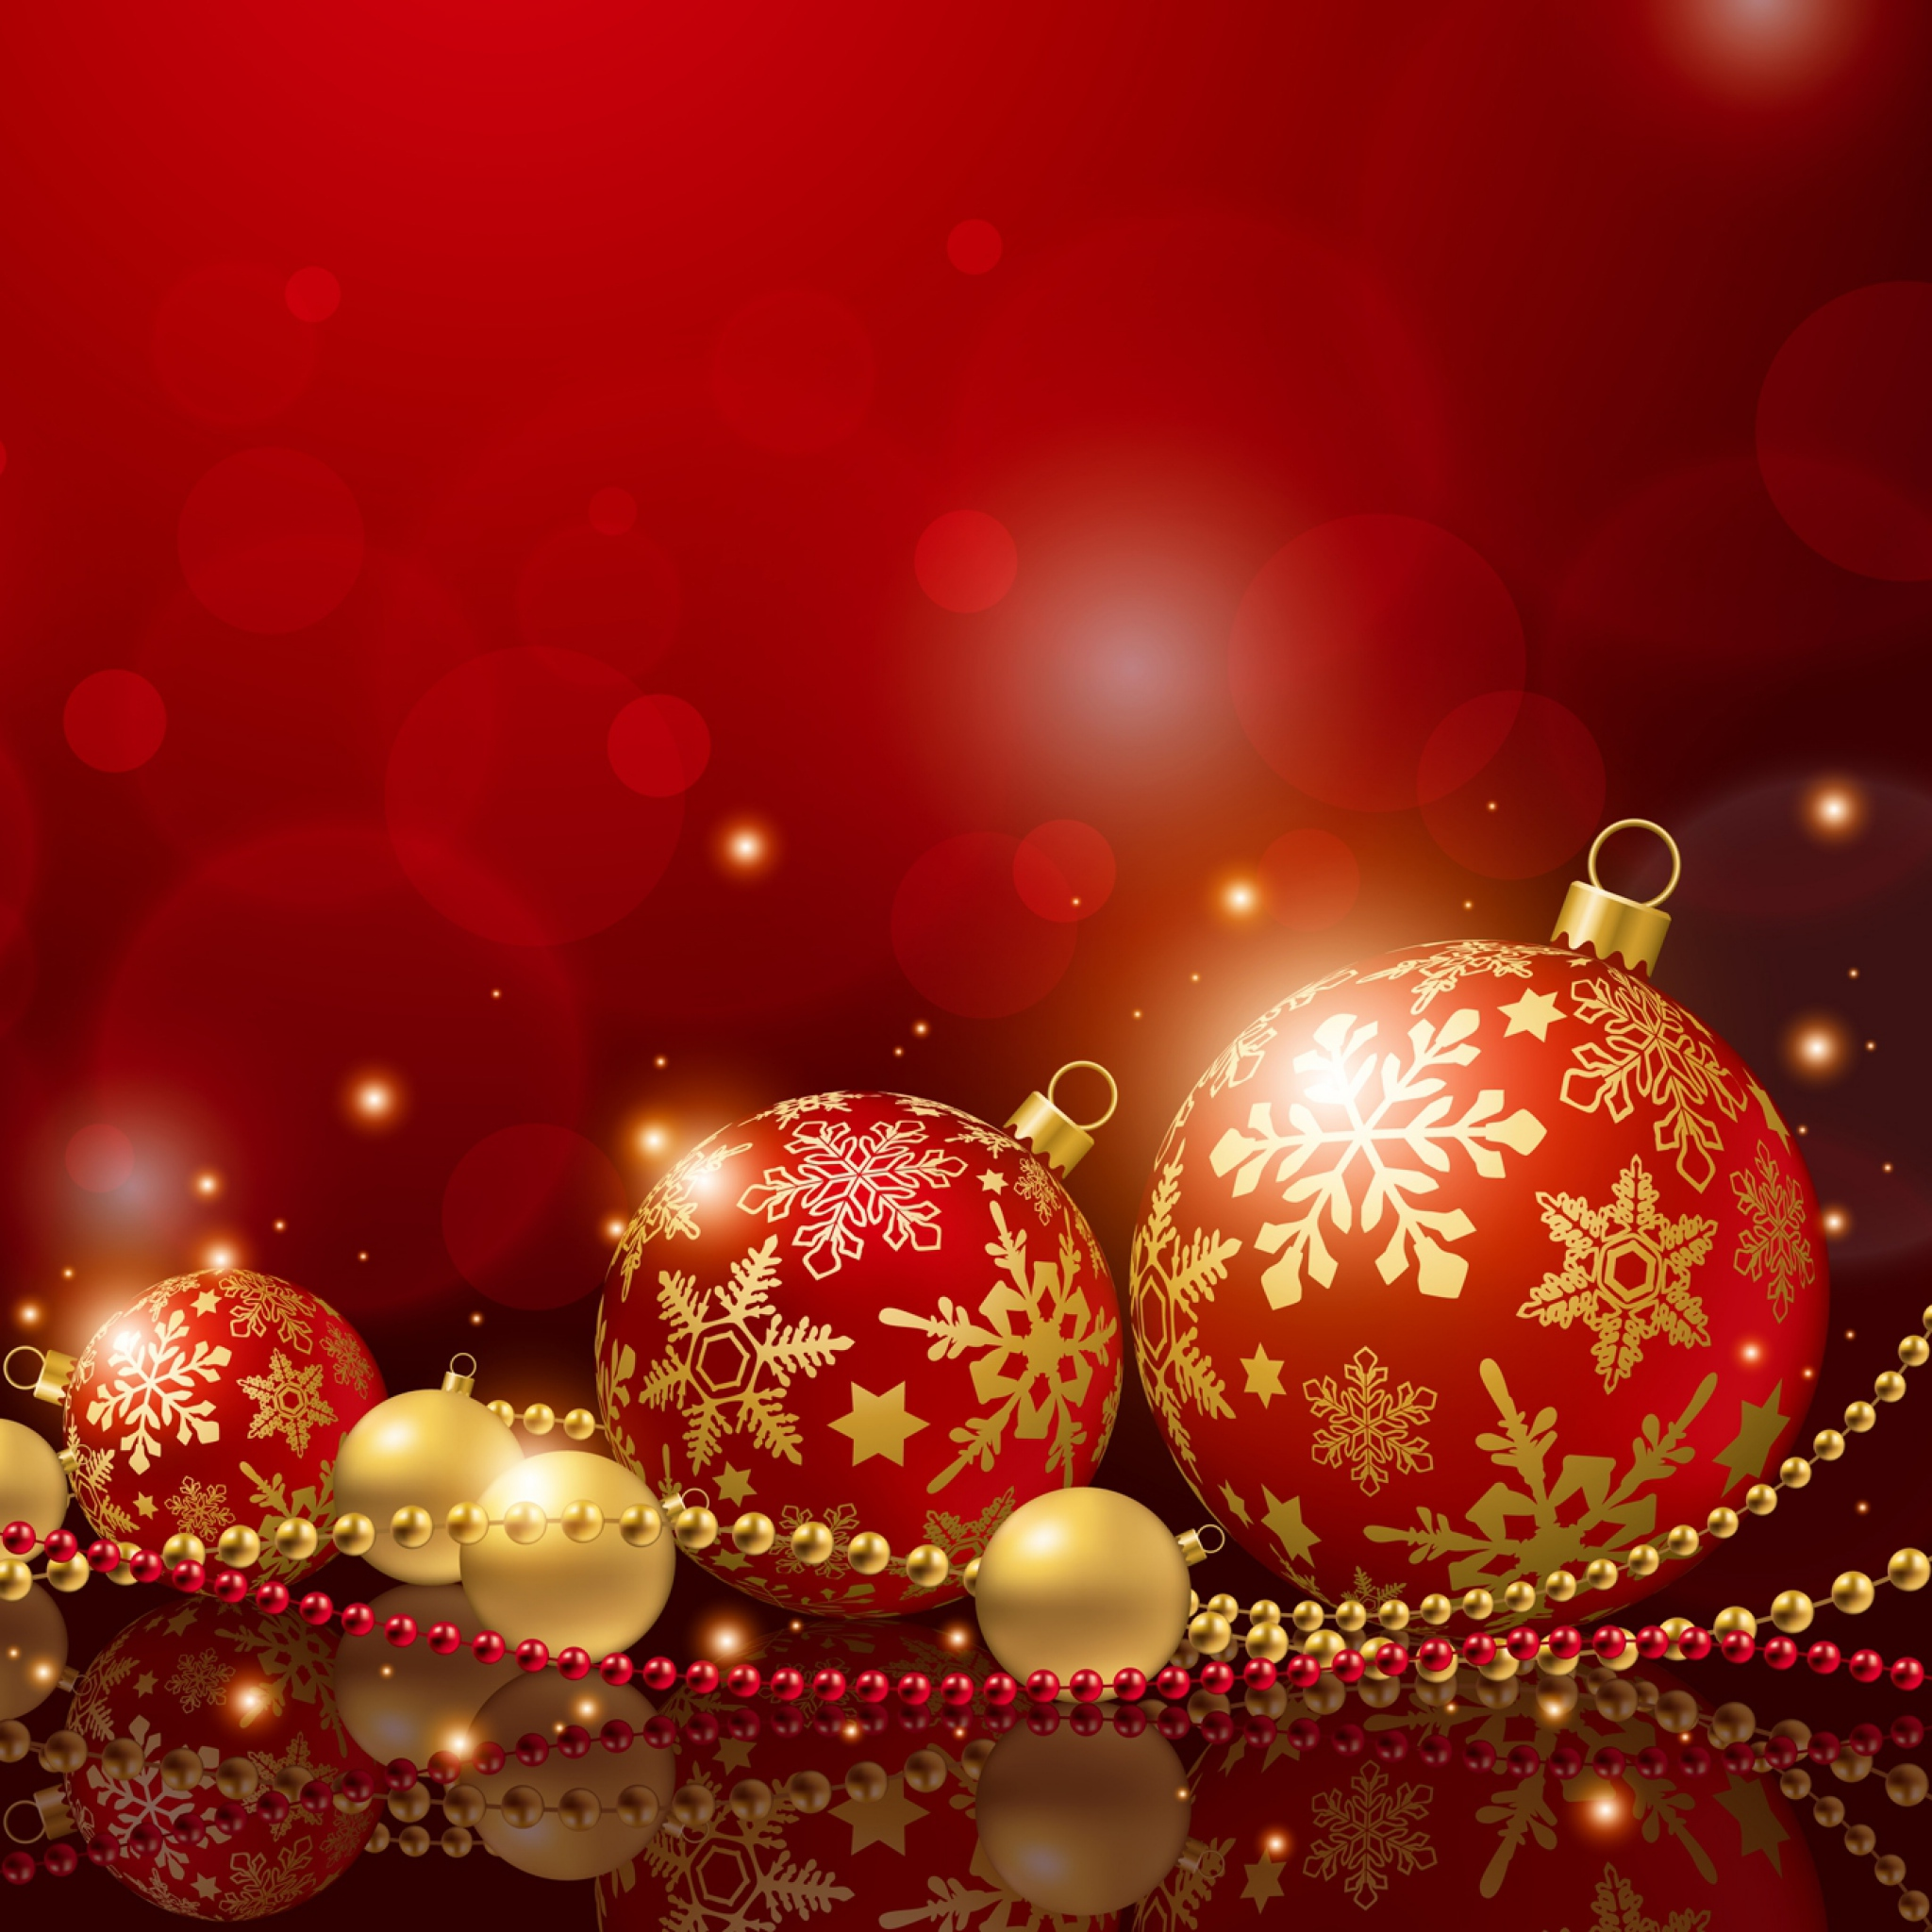 New Year Hd Wallpaper 2014 Happy New Year 2015 Wallpapers For Iphone And Ipad